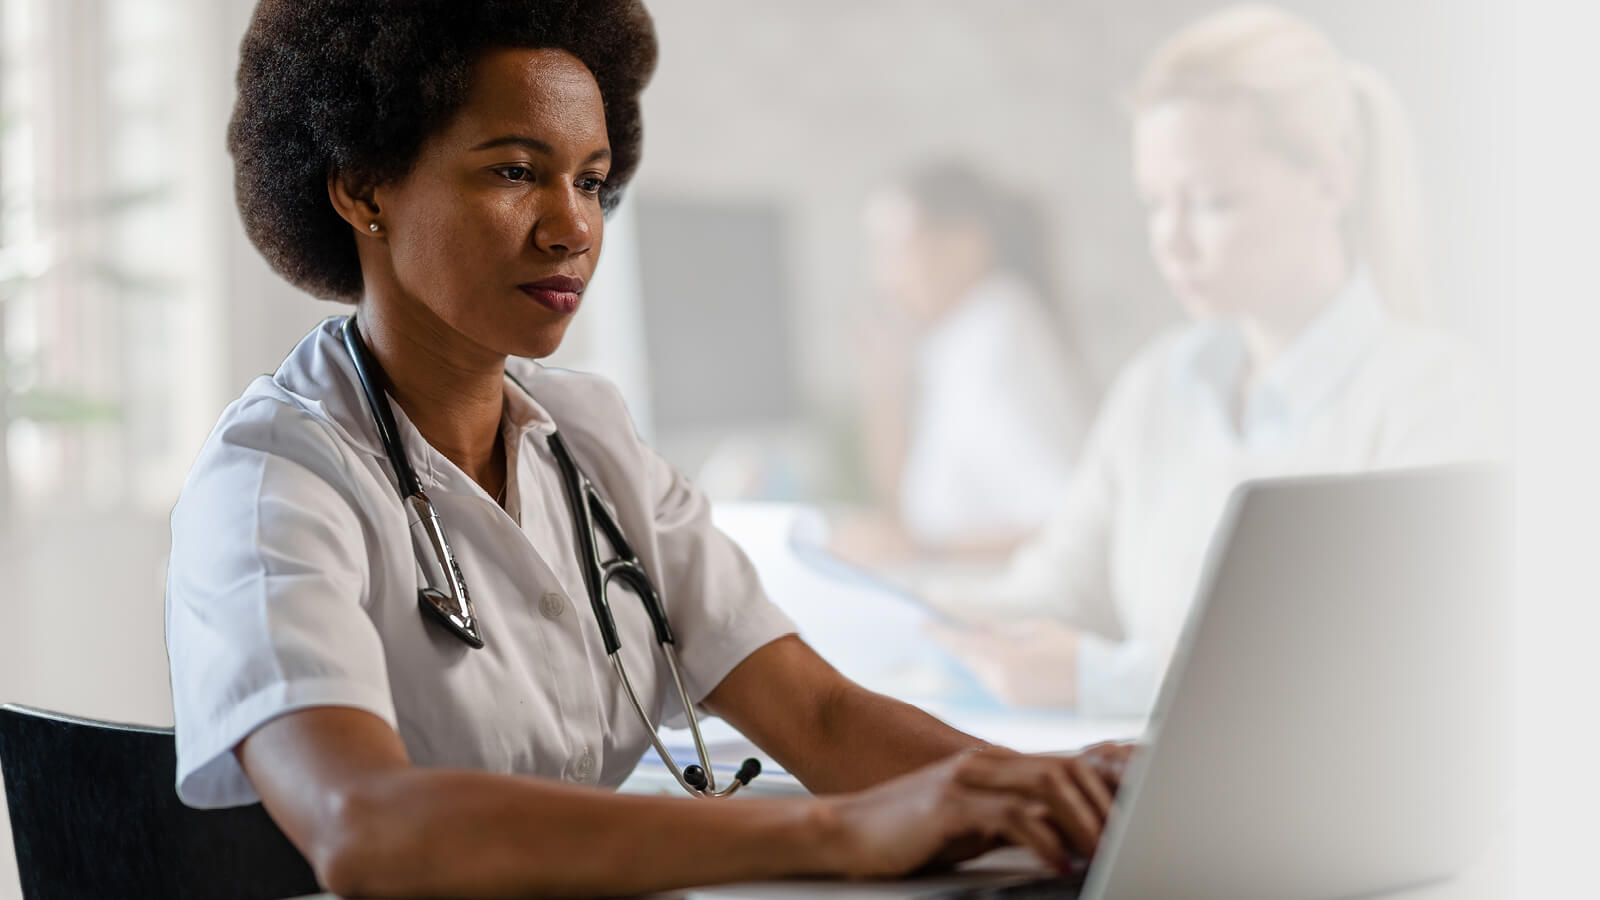 An image of a NHS healthcare professional typing on a laptop showing that Microsoft Teams gets you together.